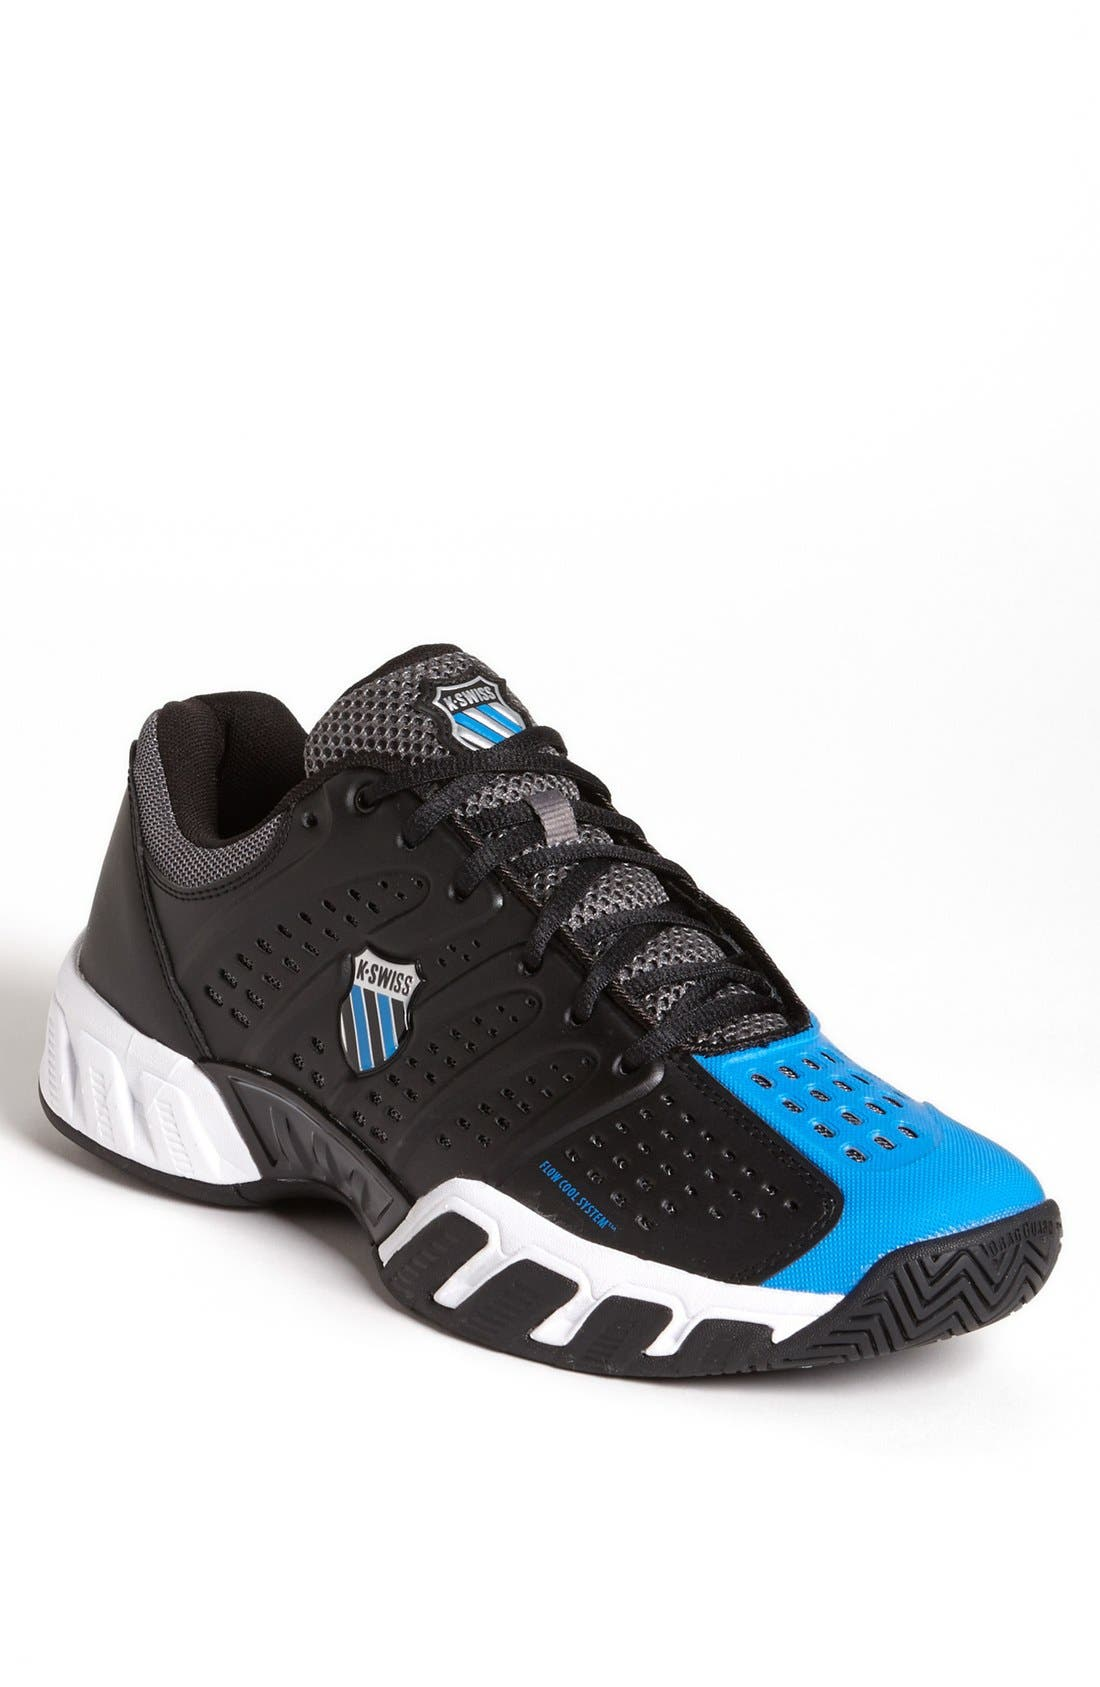 Alternate Image 1 Selected - K-Swiss 'Big Shot Light' Tennis Shoe (Men)